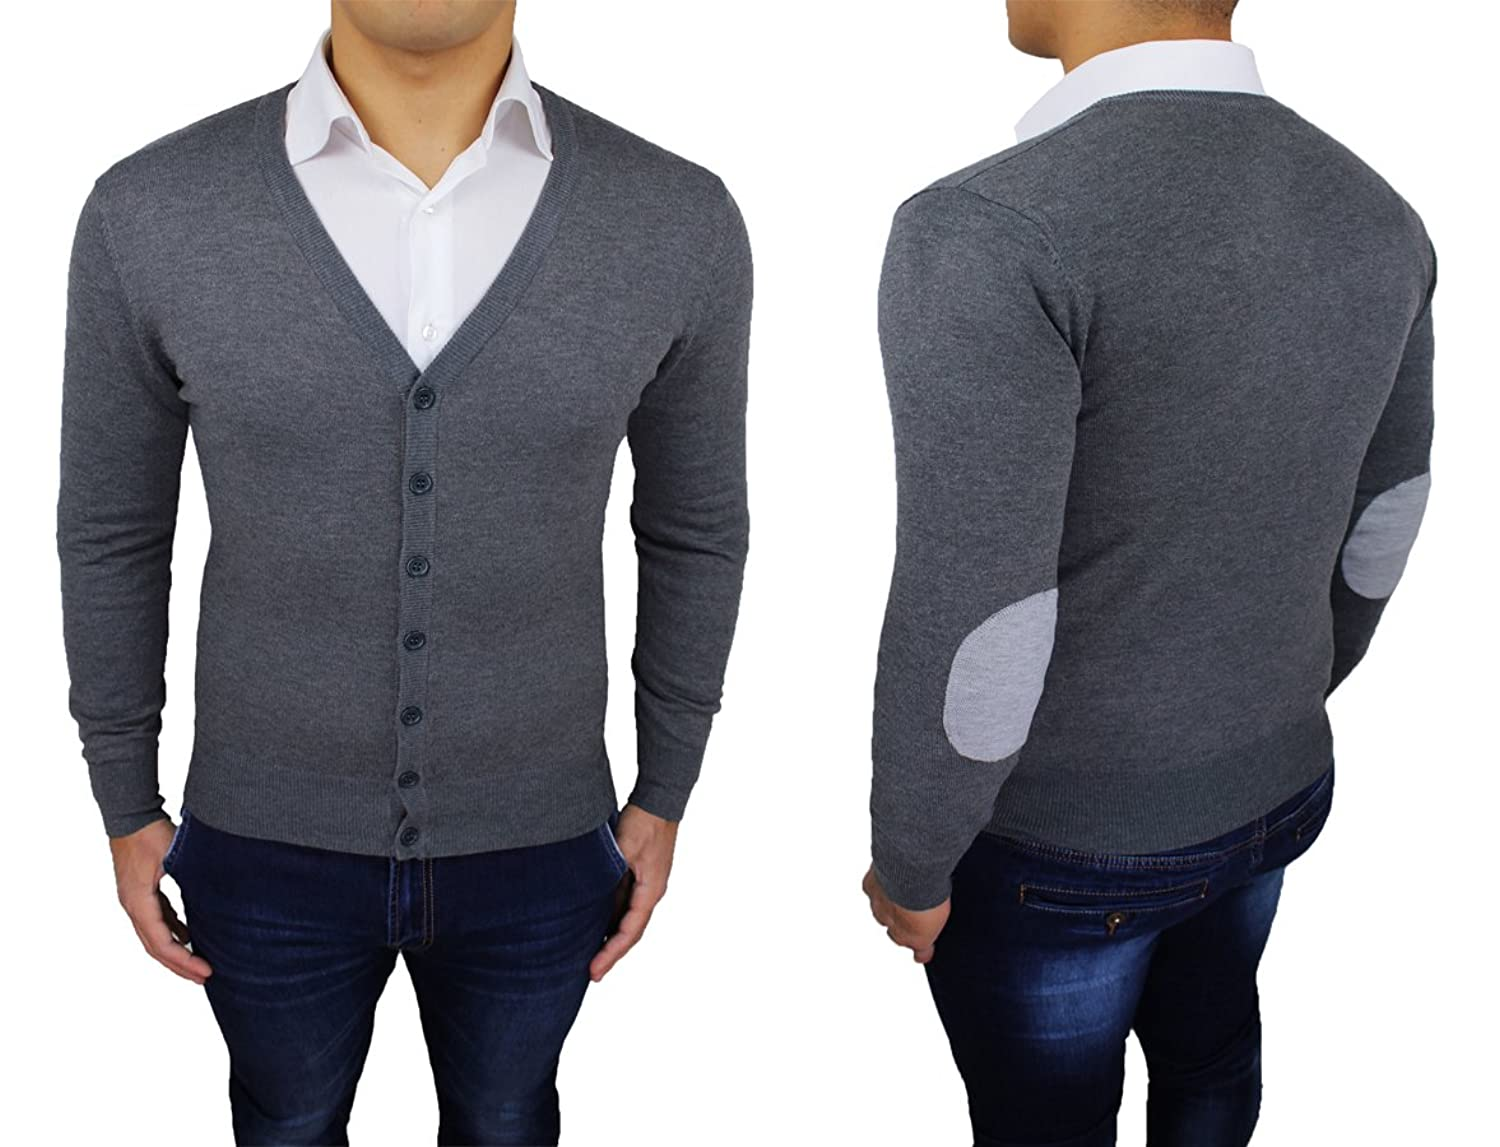 AK collezioni Men's Cardigan grey dark grey Small